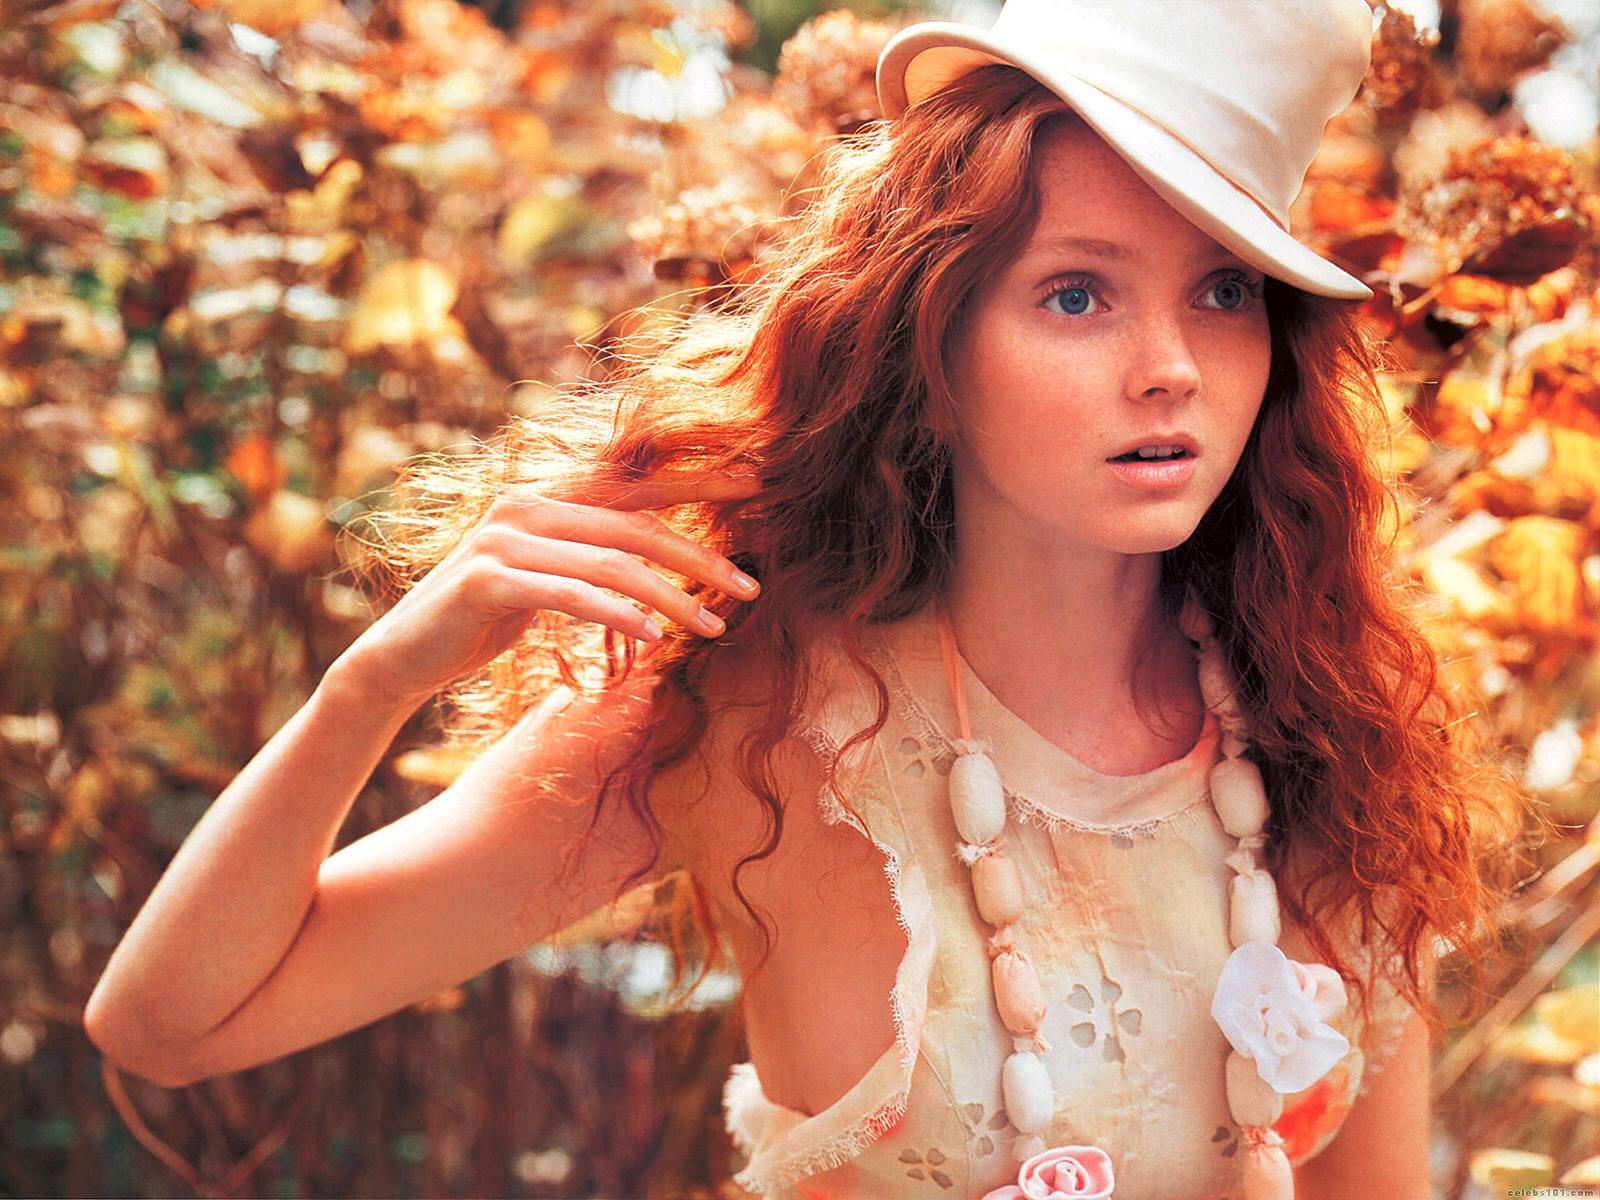 Lily_Cole_Wallpaper.jpg